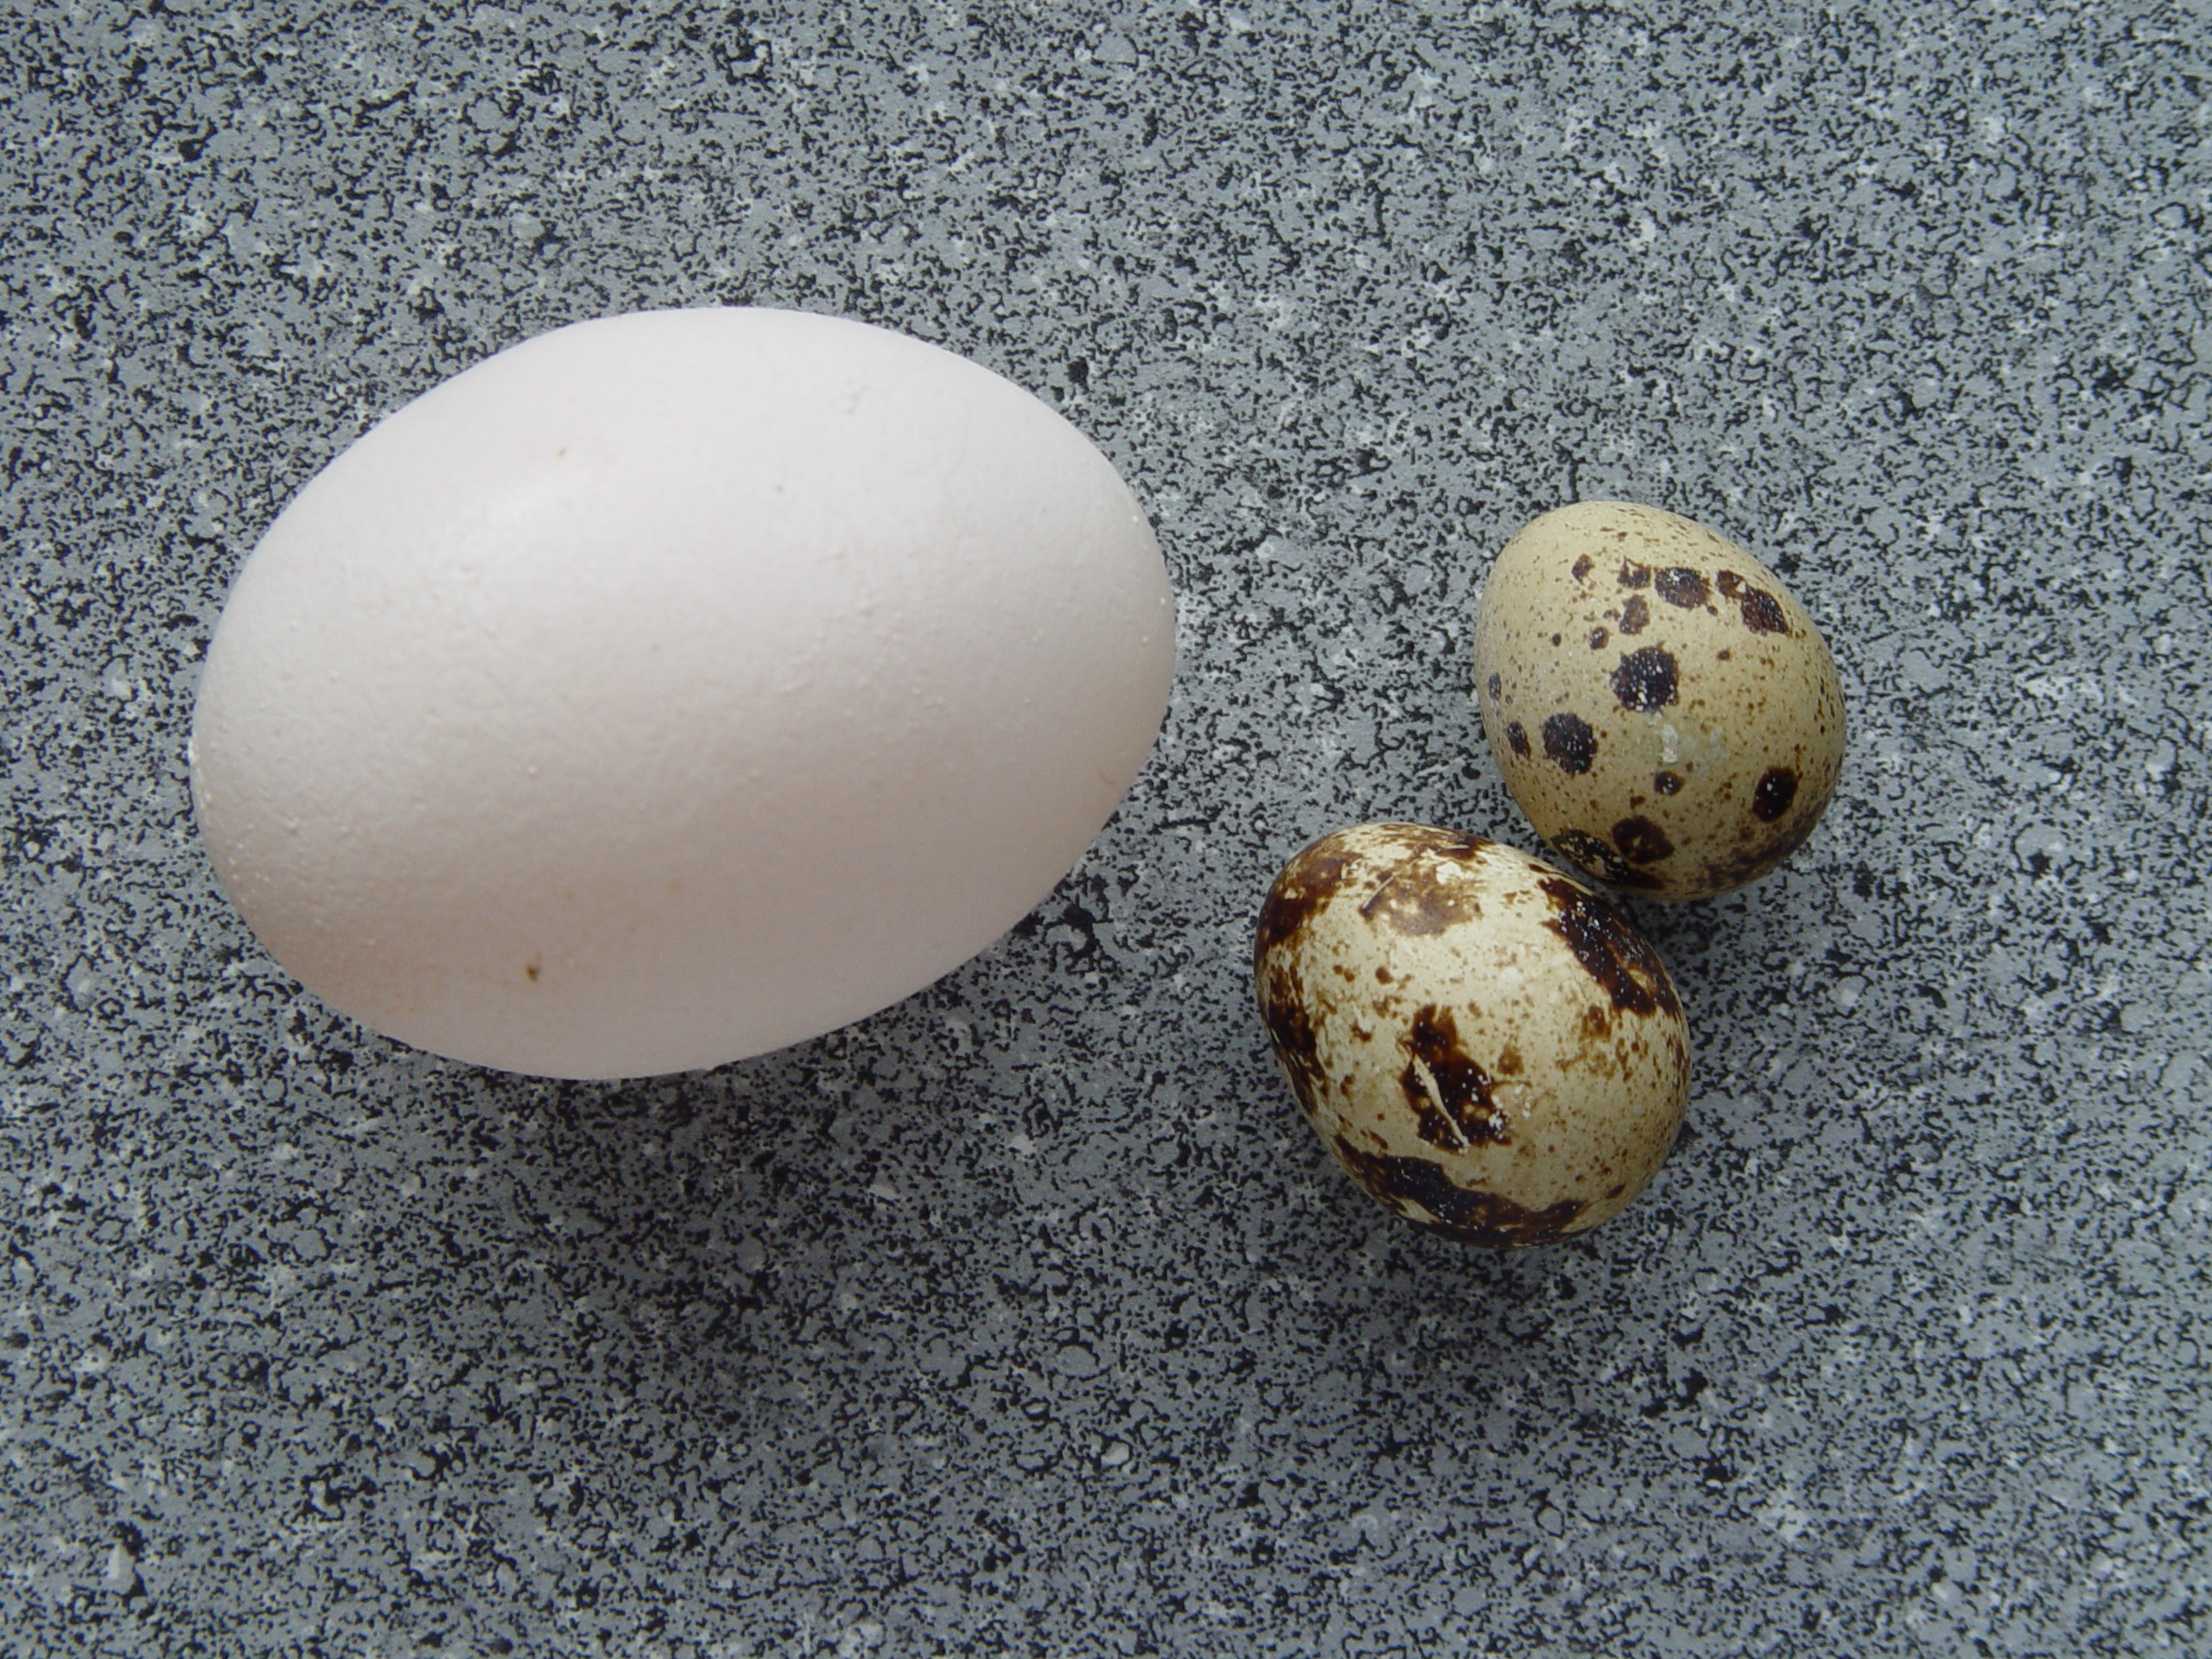 http://upload.wikimedia.org/wikipedia/commons/9/9a/Coturnix_coturnix_eggs.jpg